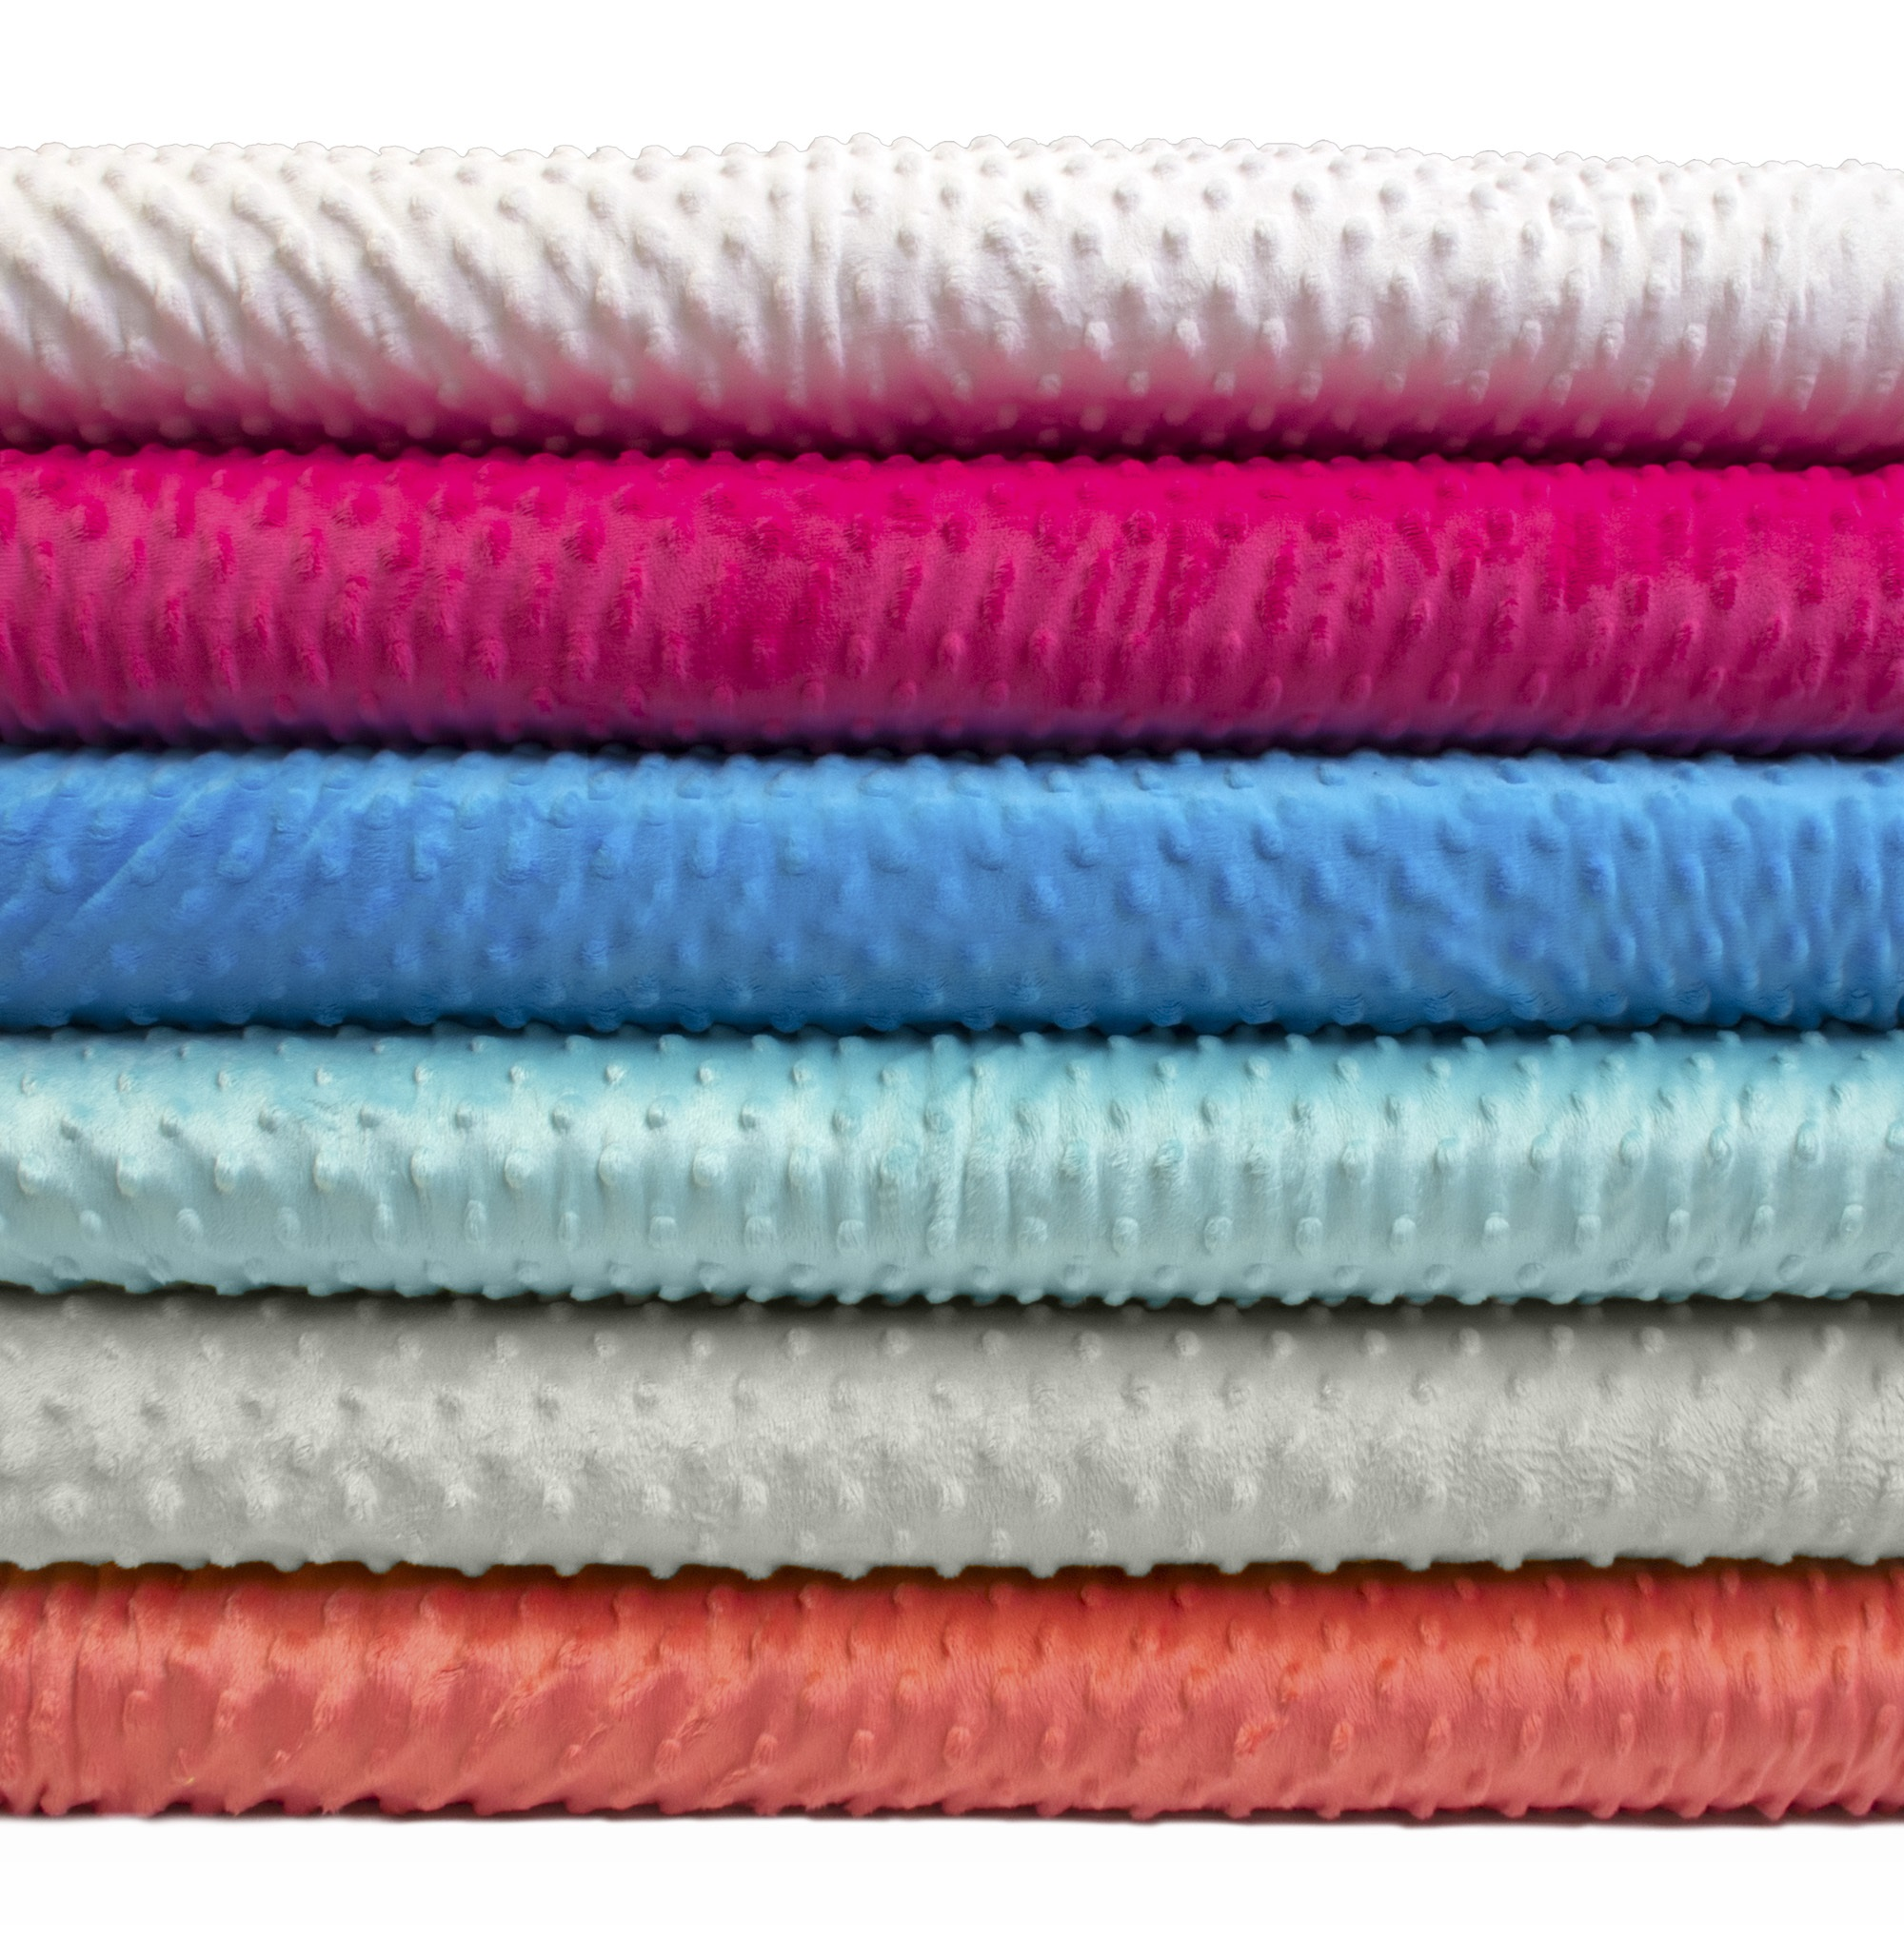 "David Textiles Polyester Fleece Plush 36"" x 60"" Dot Fabric, per Yard"